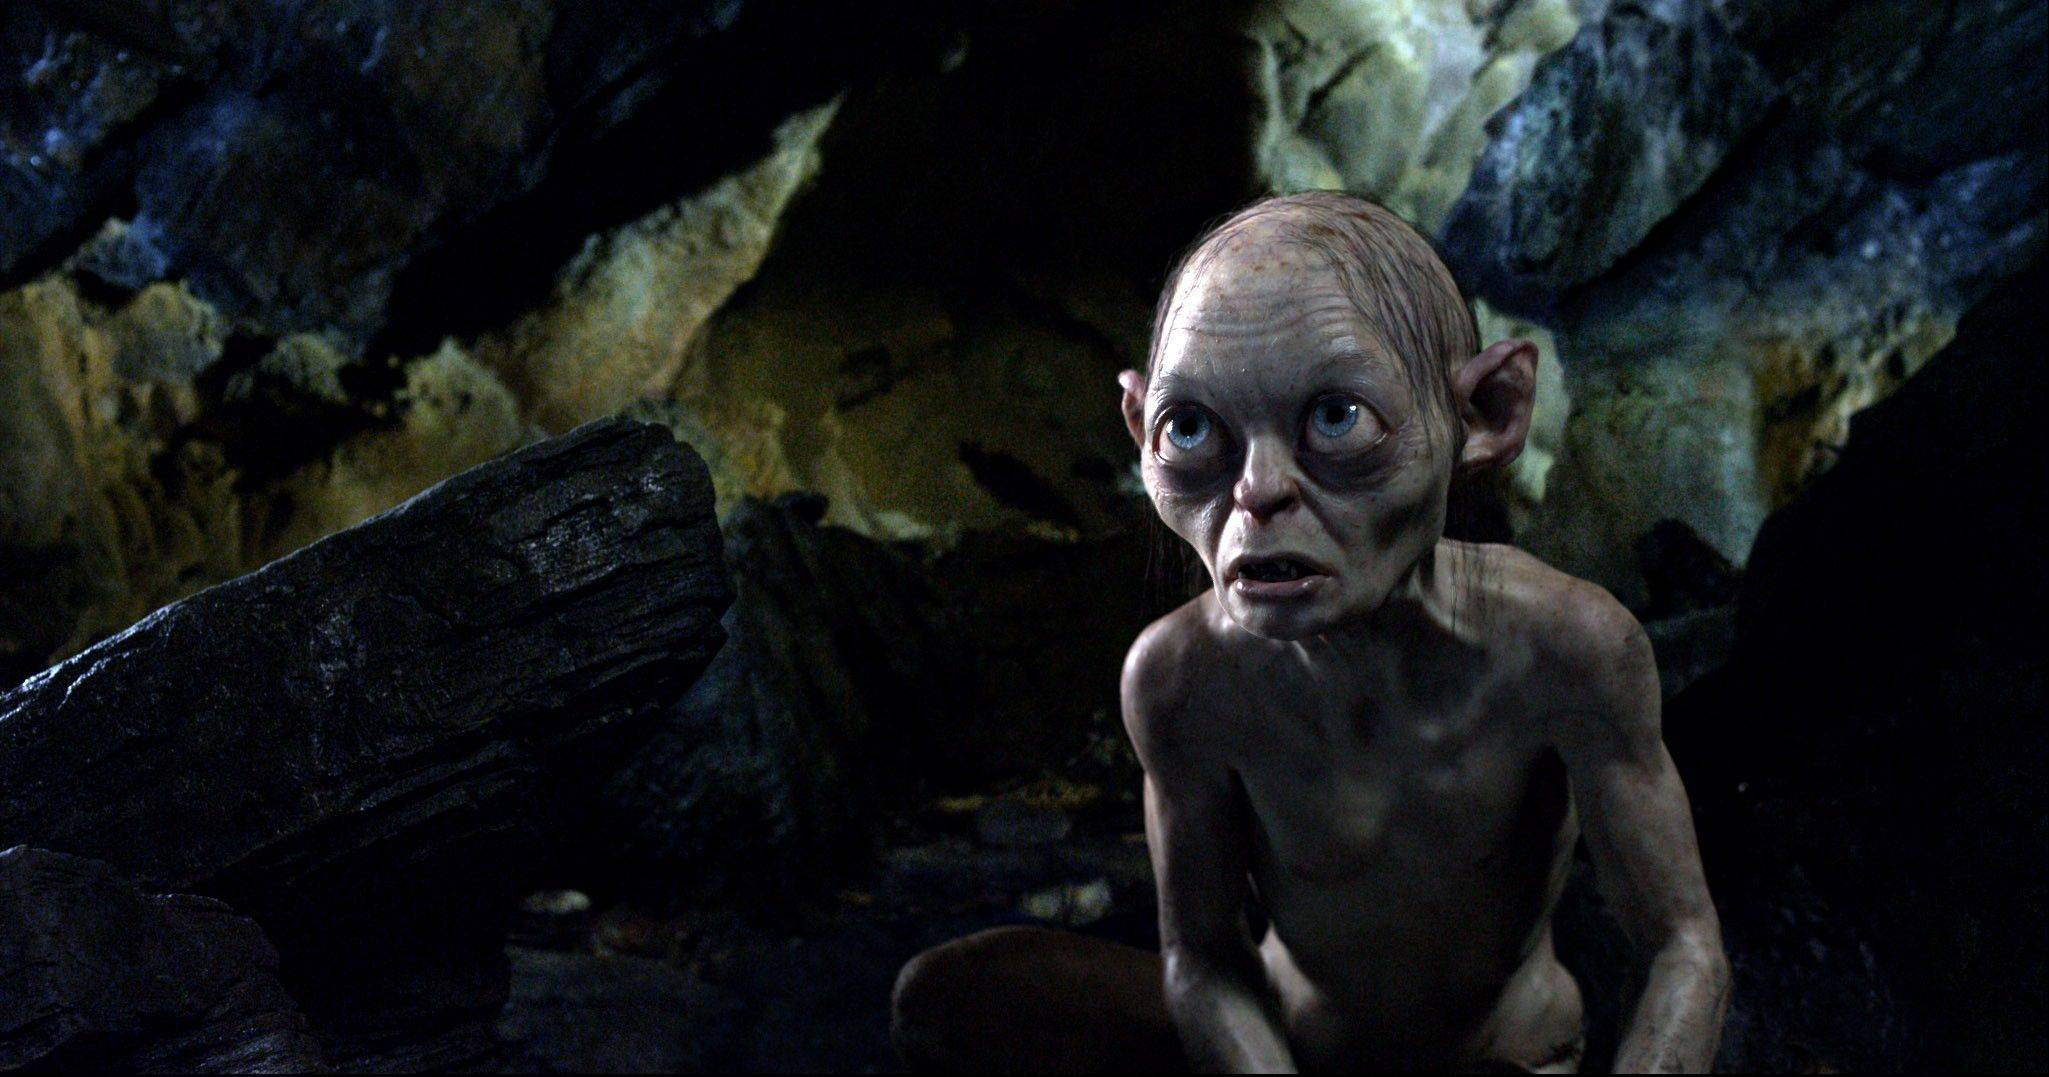 This publicity file photo released by Warner Bros., shows the character Gollum voiced by Andy Serkis in a scene from the fantasy adventure �The Hobbit: An Unexpected Journey.� The film made nearly $33 million to hang on to the top spot at the box office.